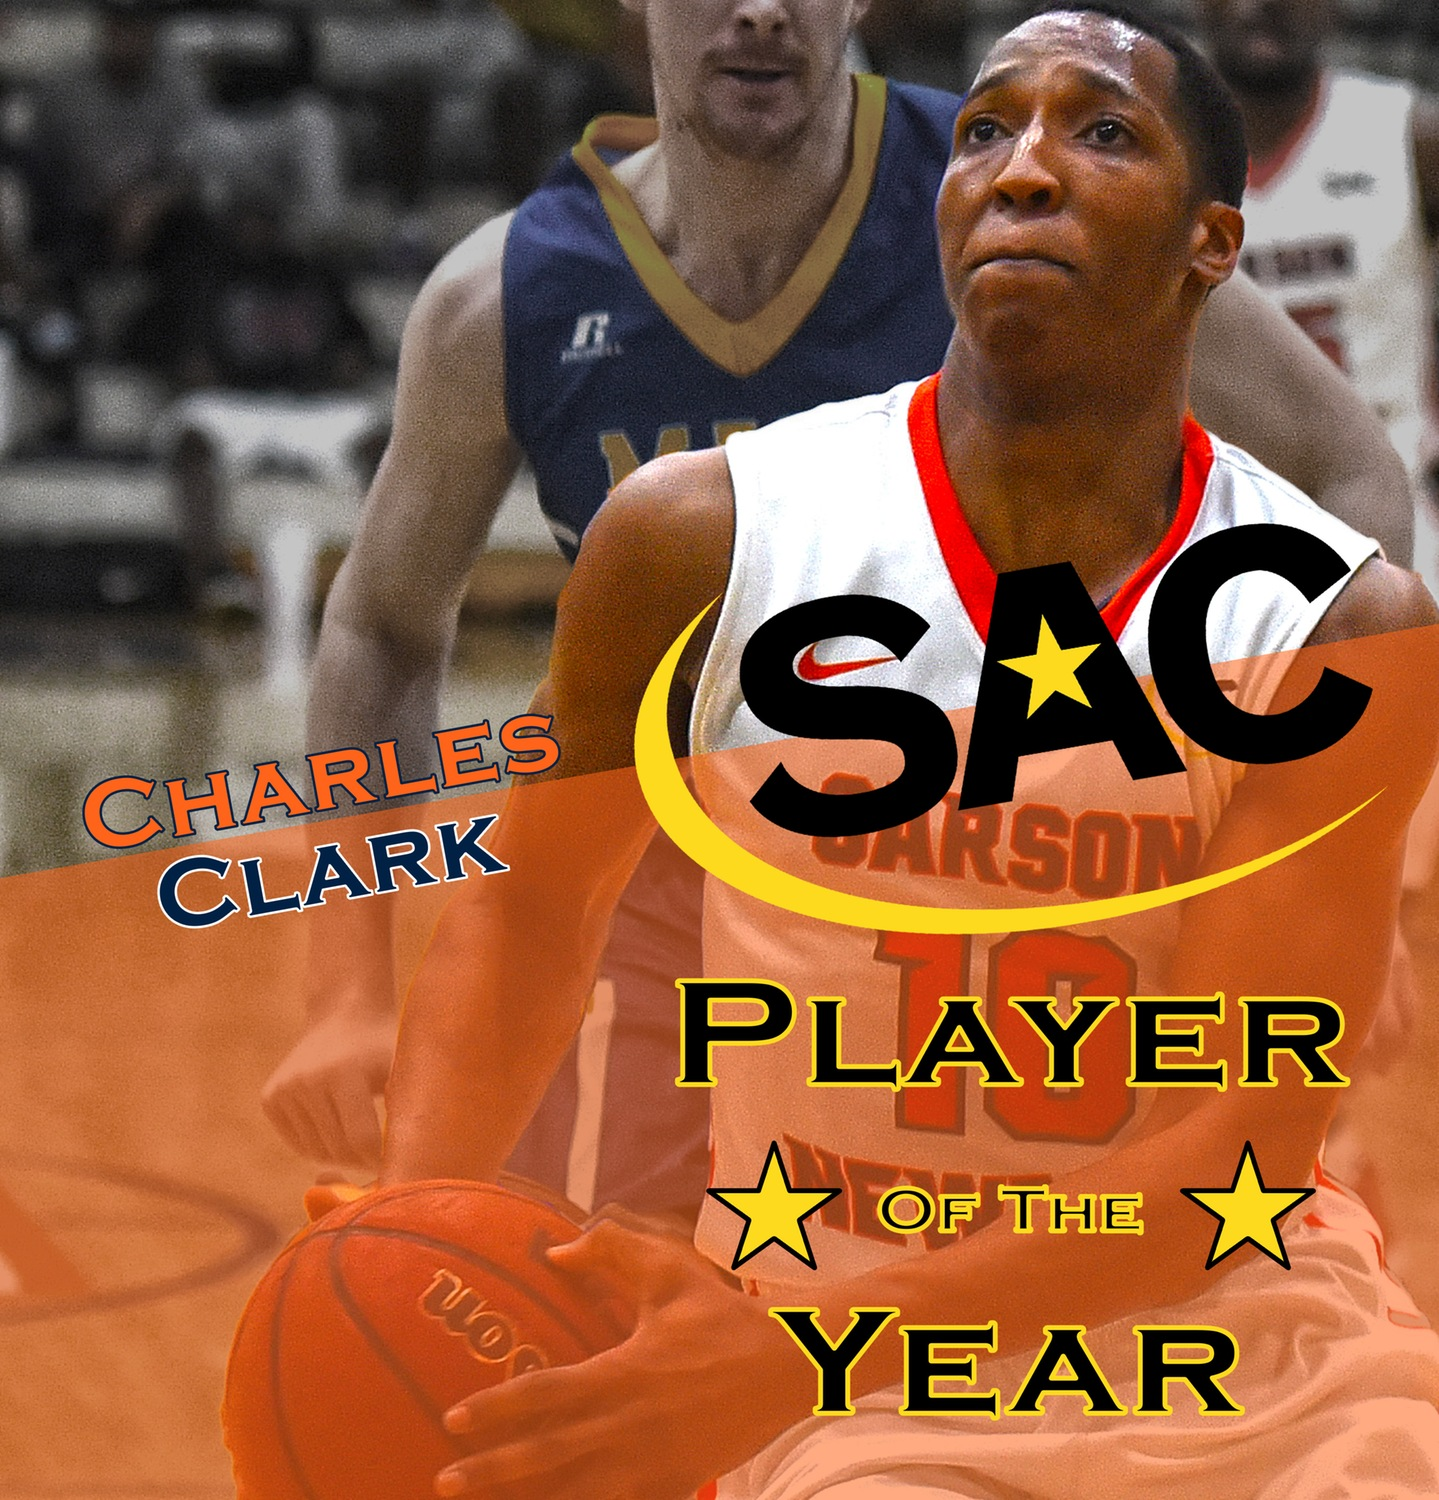 Clark named player of the year, Williams earns All-SAC honors